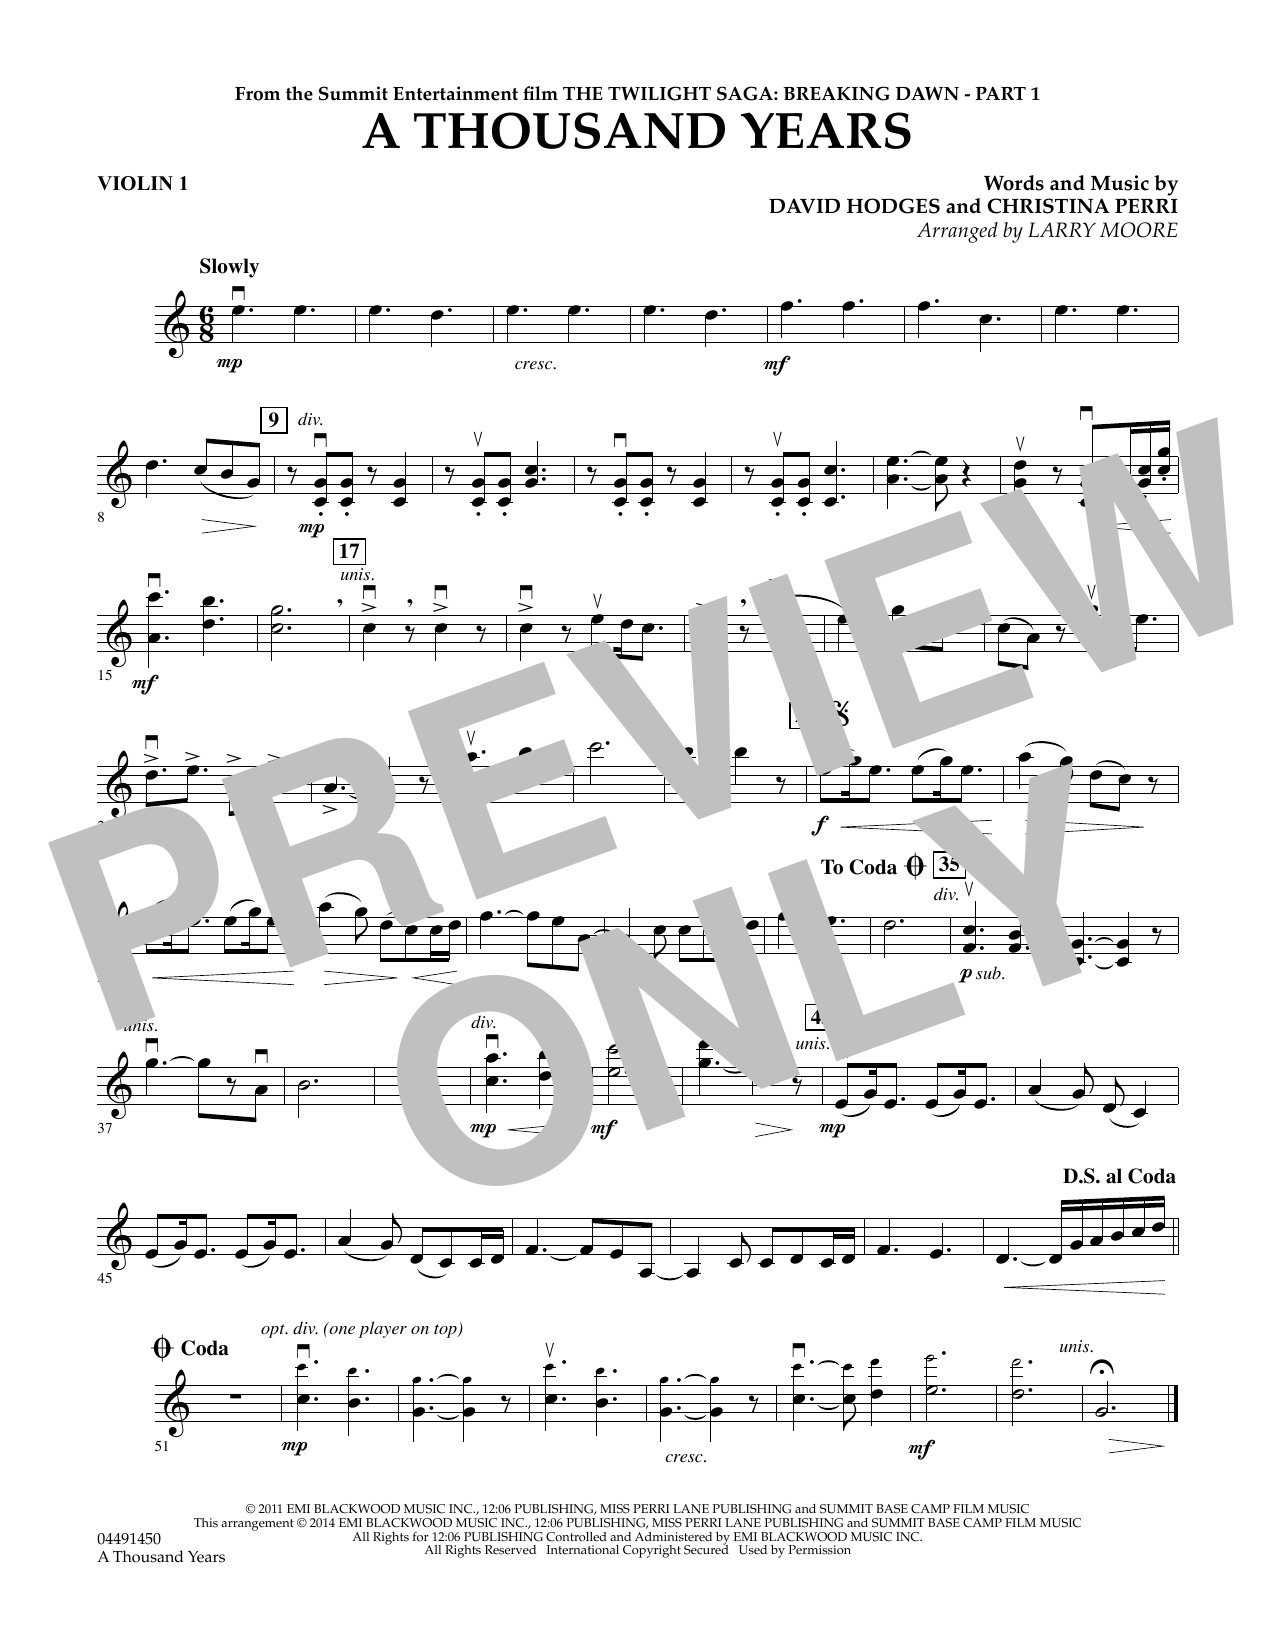 A Thousand Years - Violin 1 - Sheet Music to Download